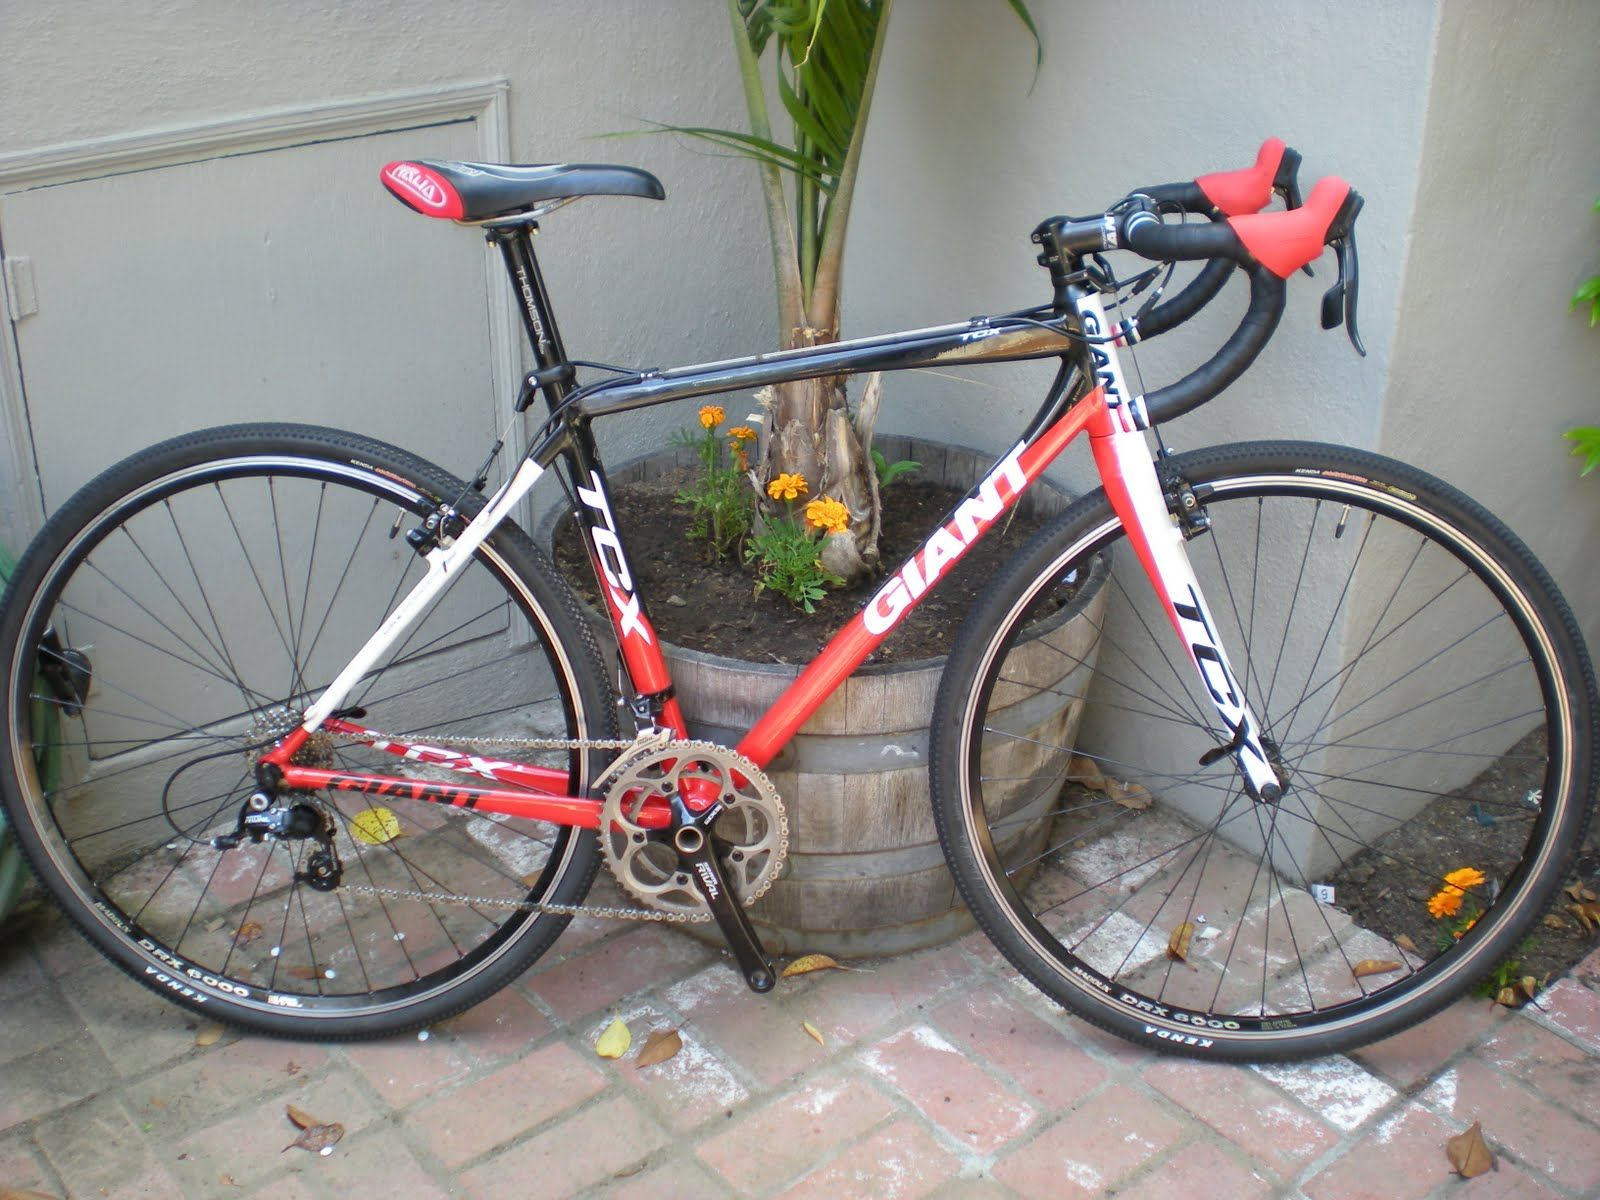 Cyclocross Bikes For Sale >> Cyclocross Bicycles Cyclocross Bike For Sale 2010 Giant Tcx 1